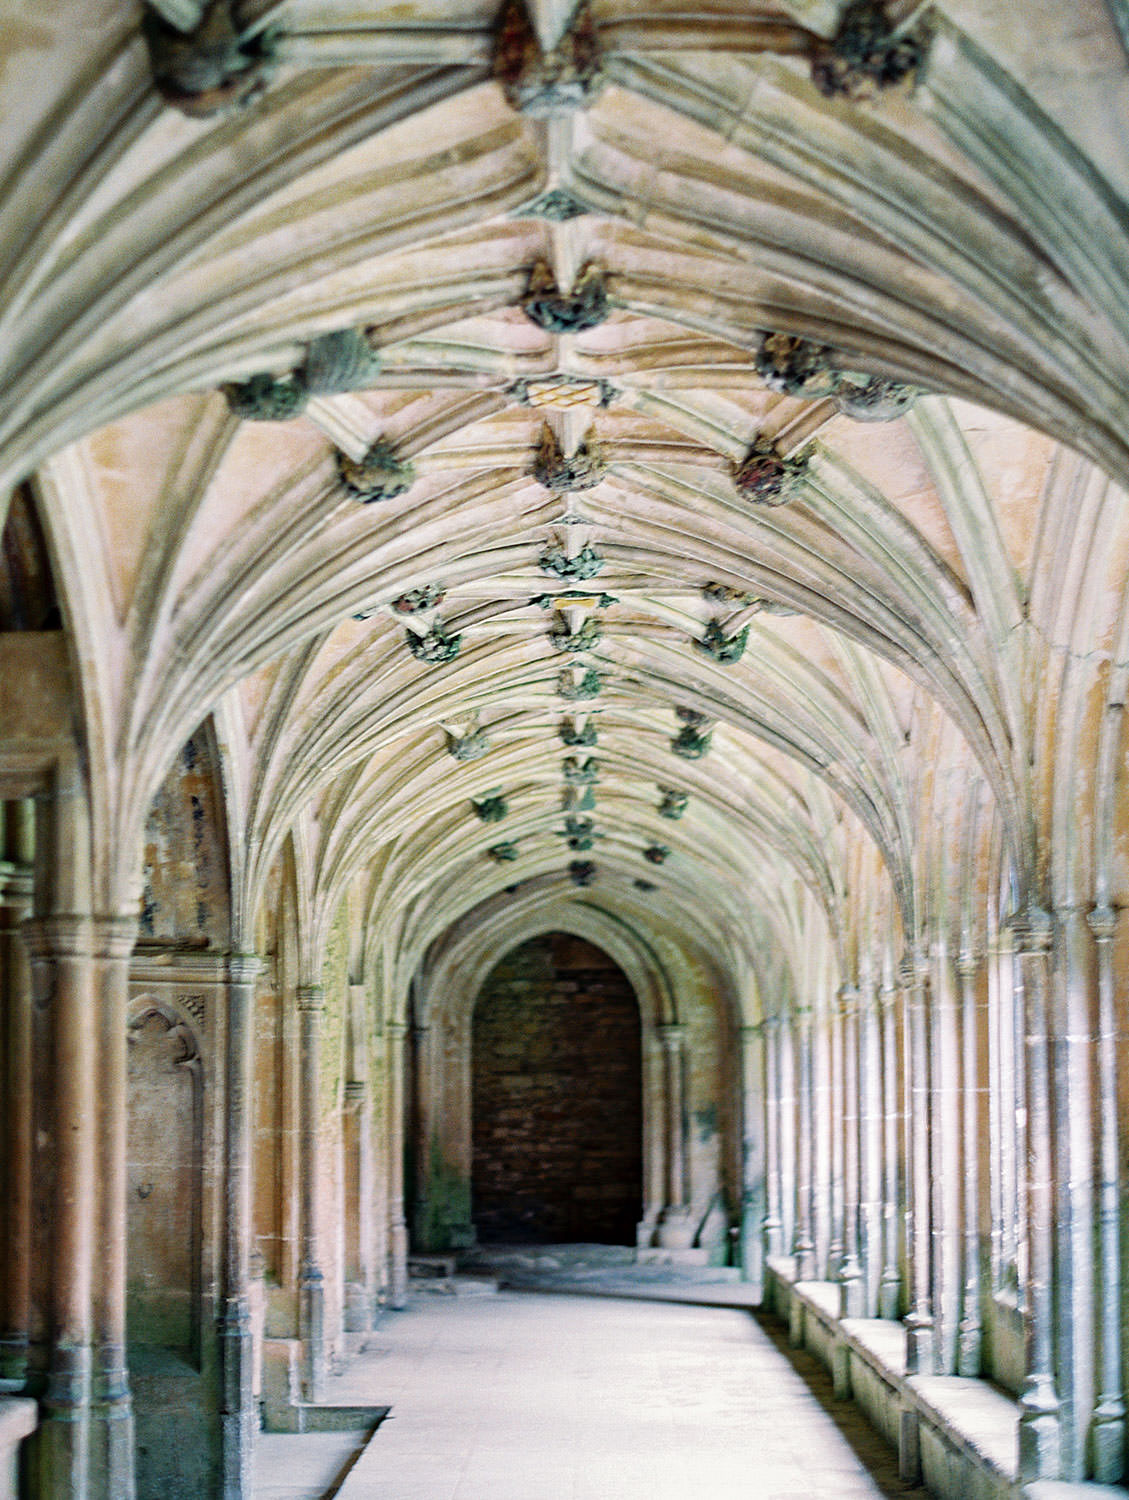 Lacock Abbey cloister where Harry Potter was filmed in England, Cavin Elizabeth Photography